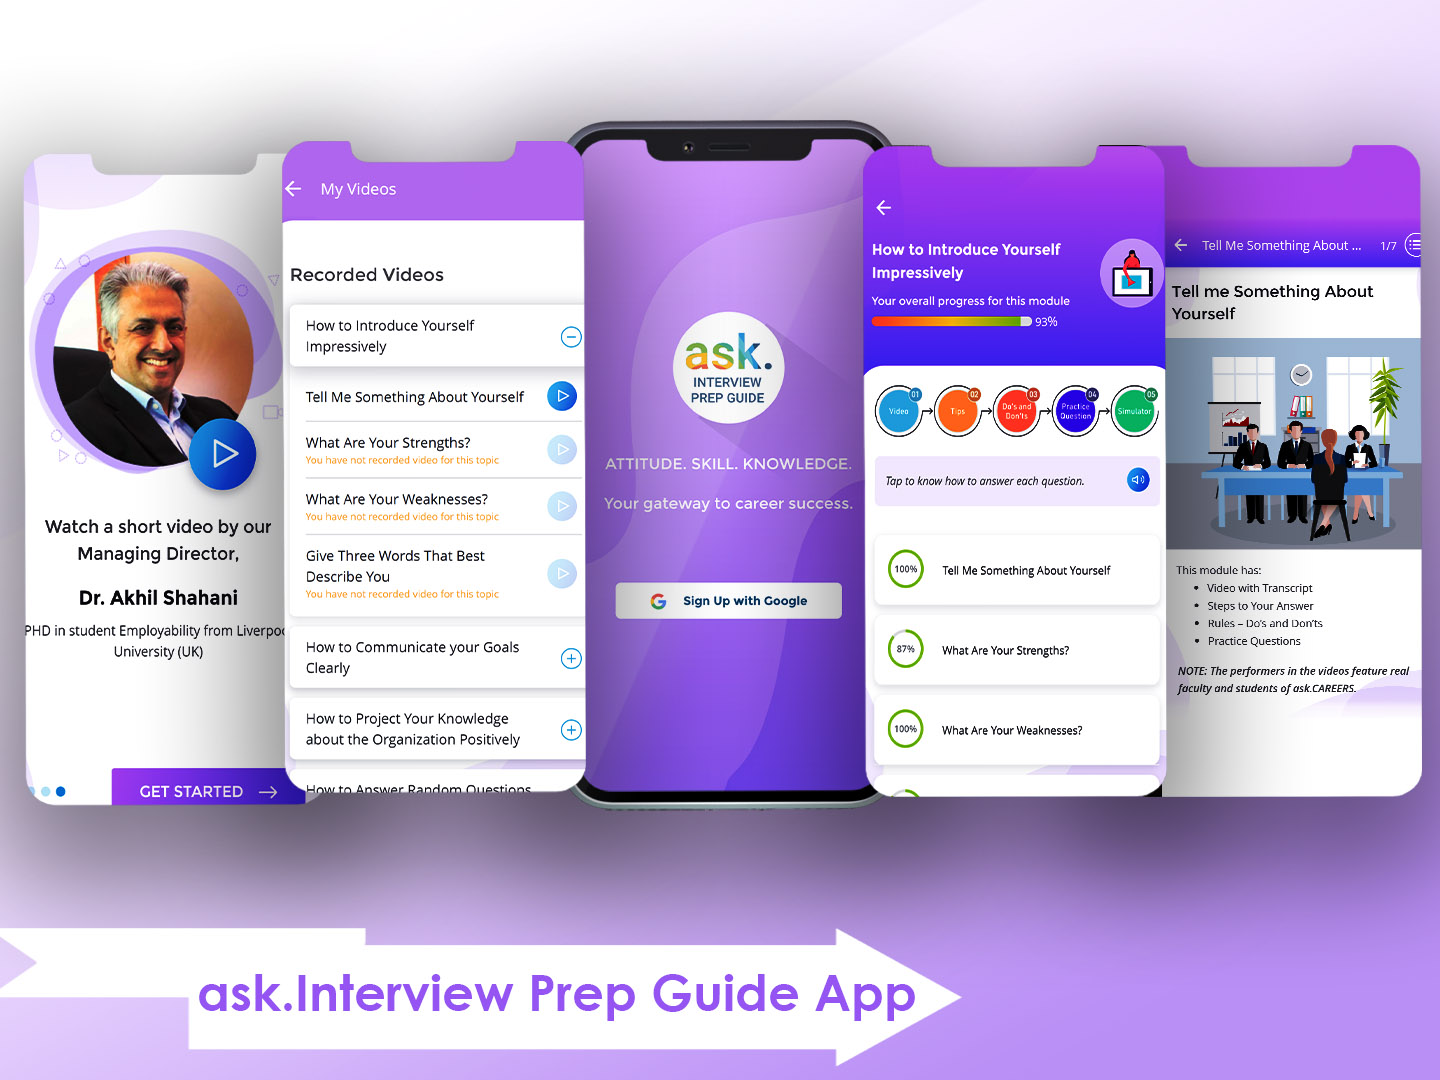 ask. Interview Prep Guide